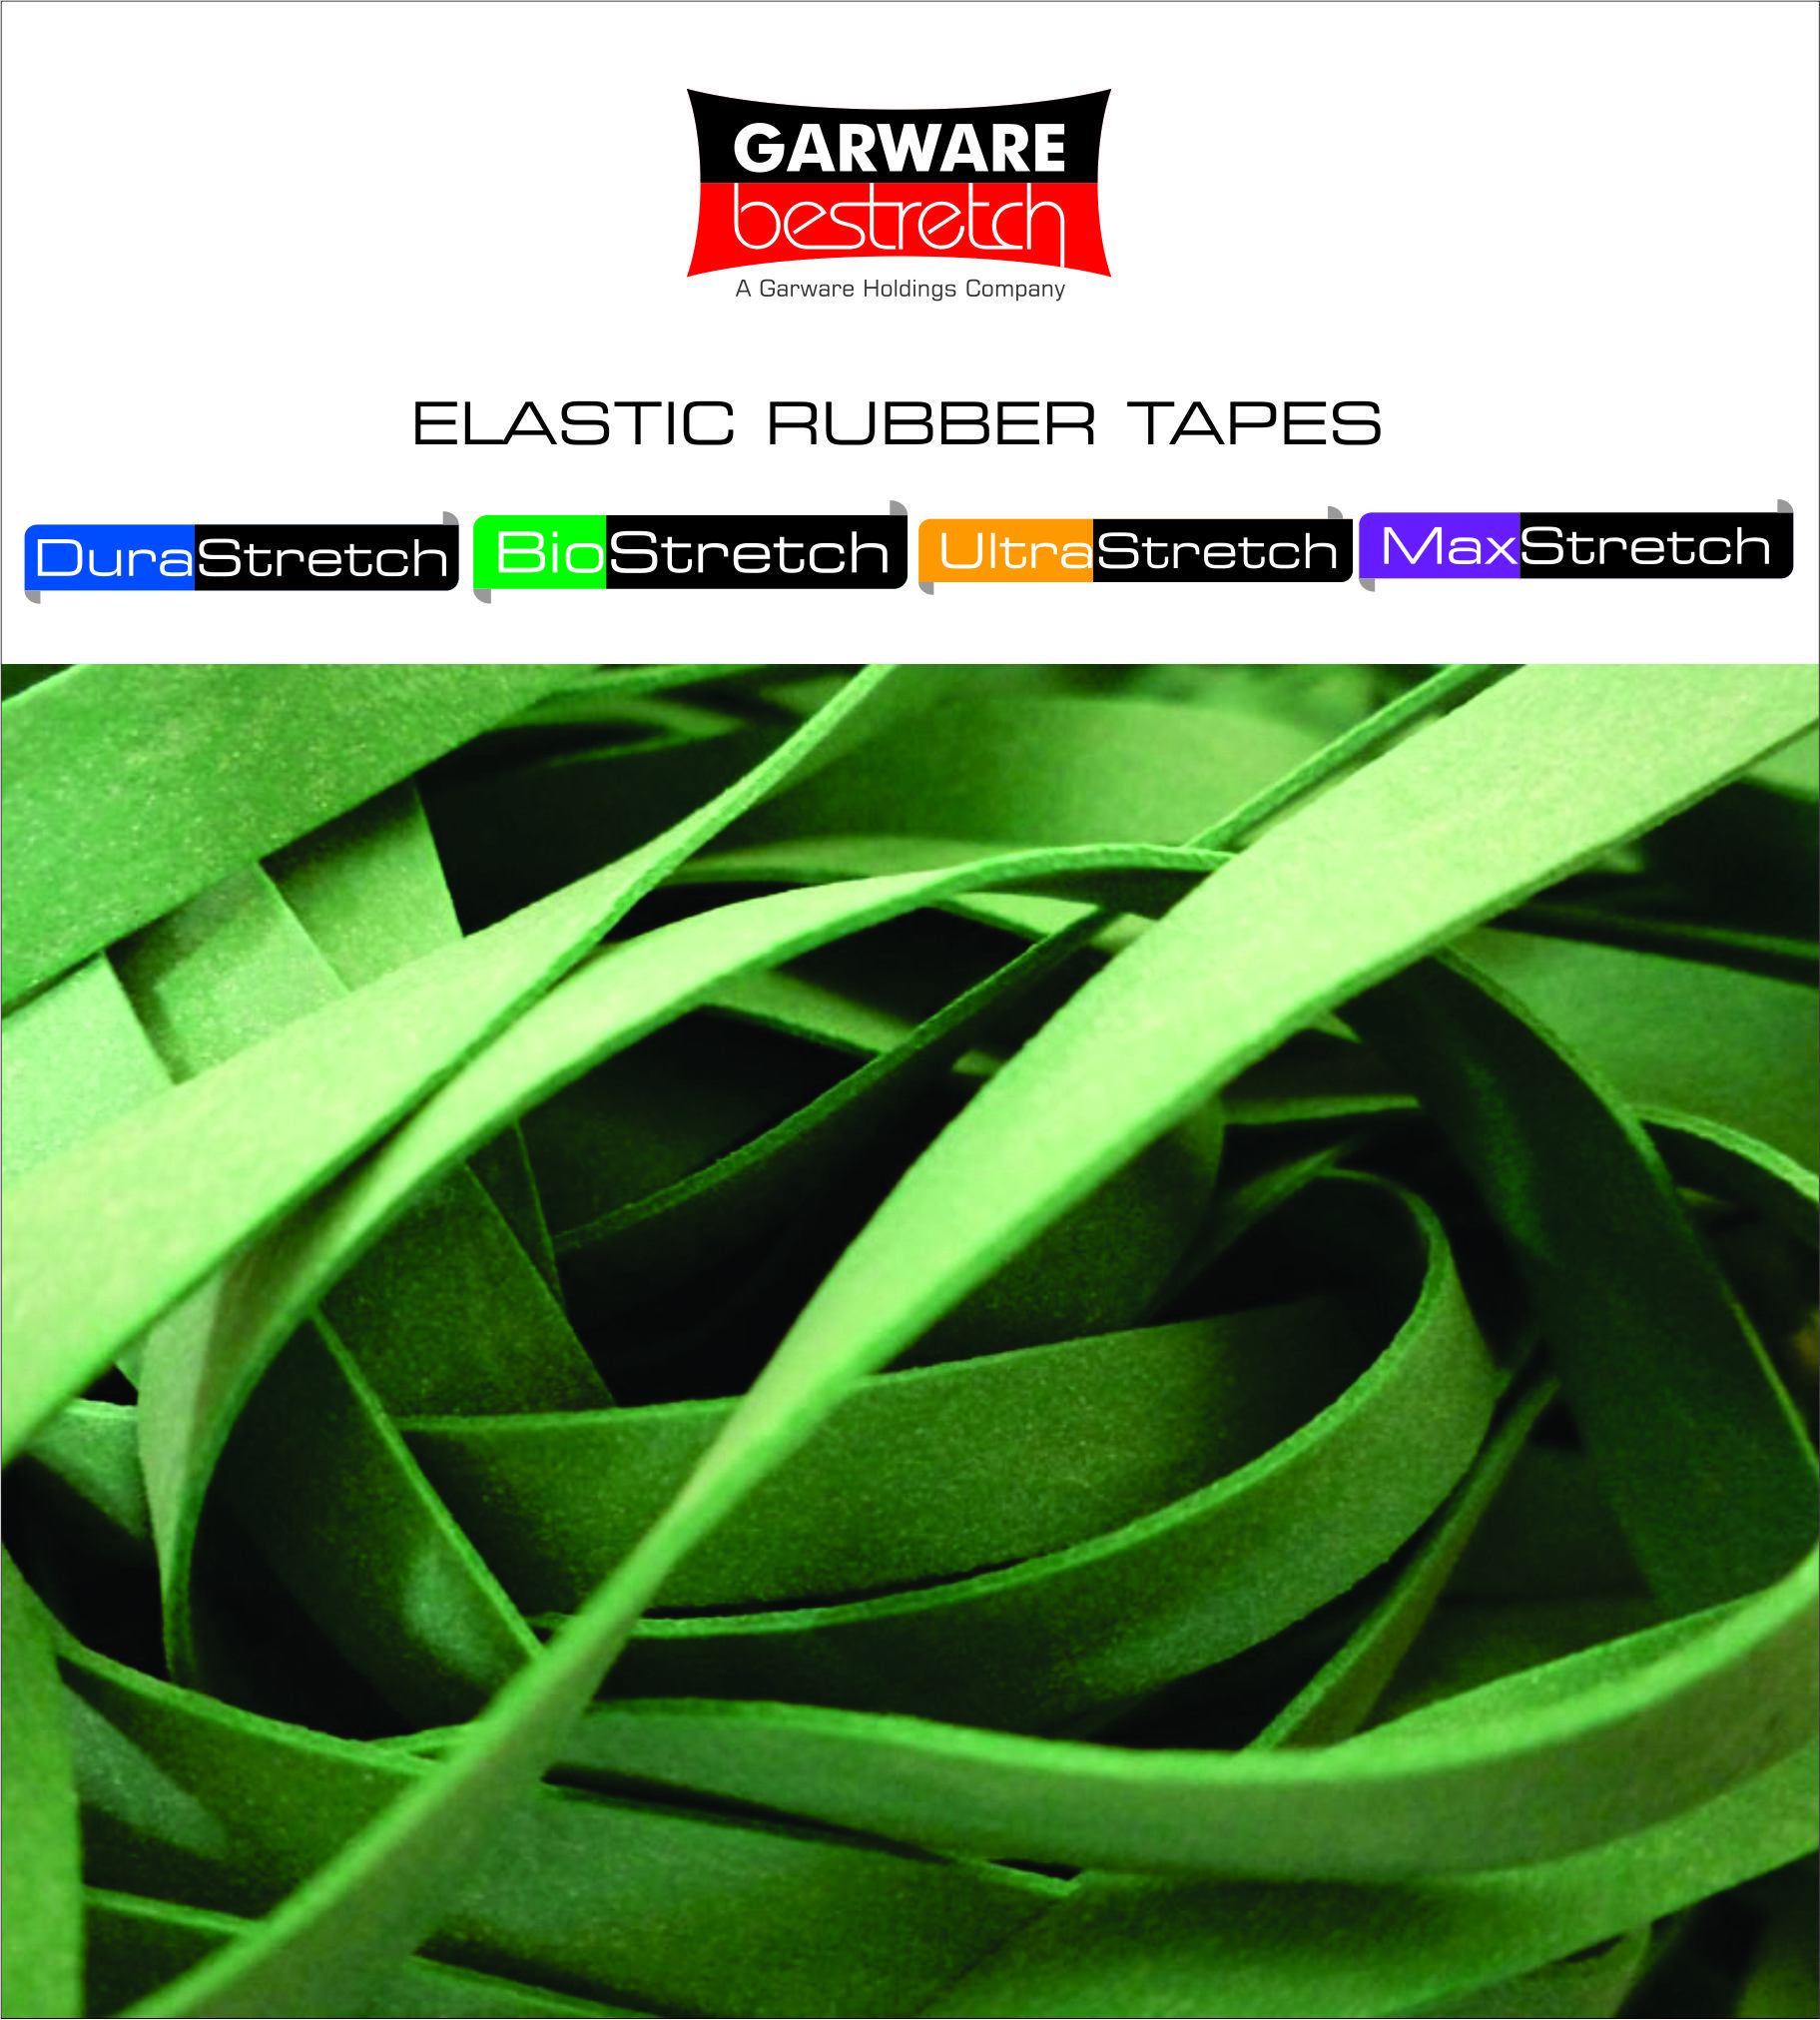 Elastic Rubber Tapes has insert elastics for home textile